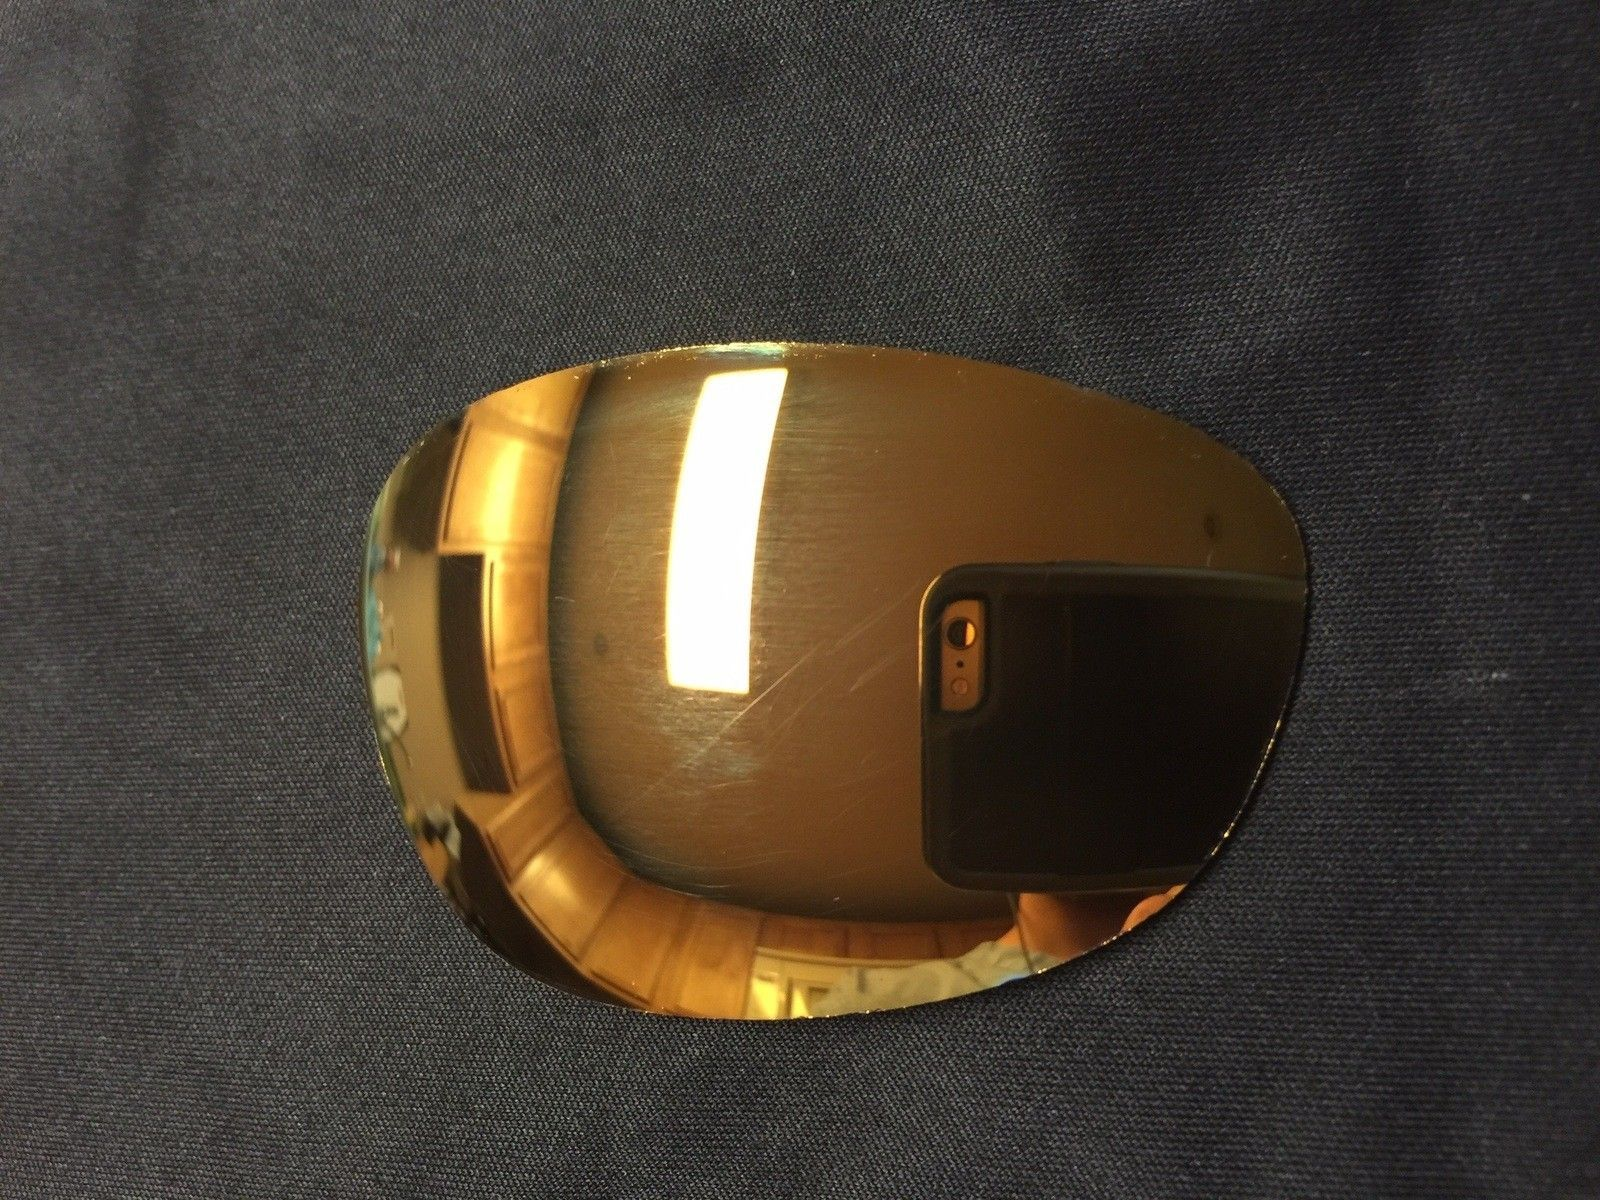 Used XX BI lens ***price dropped*** - image4.JPG